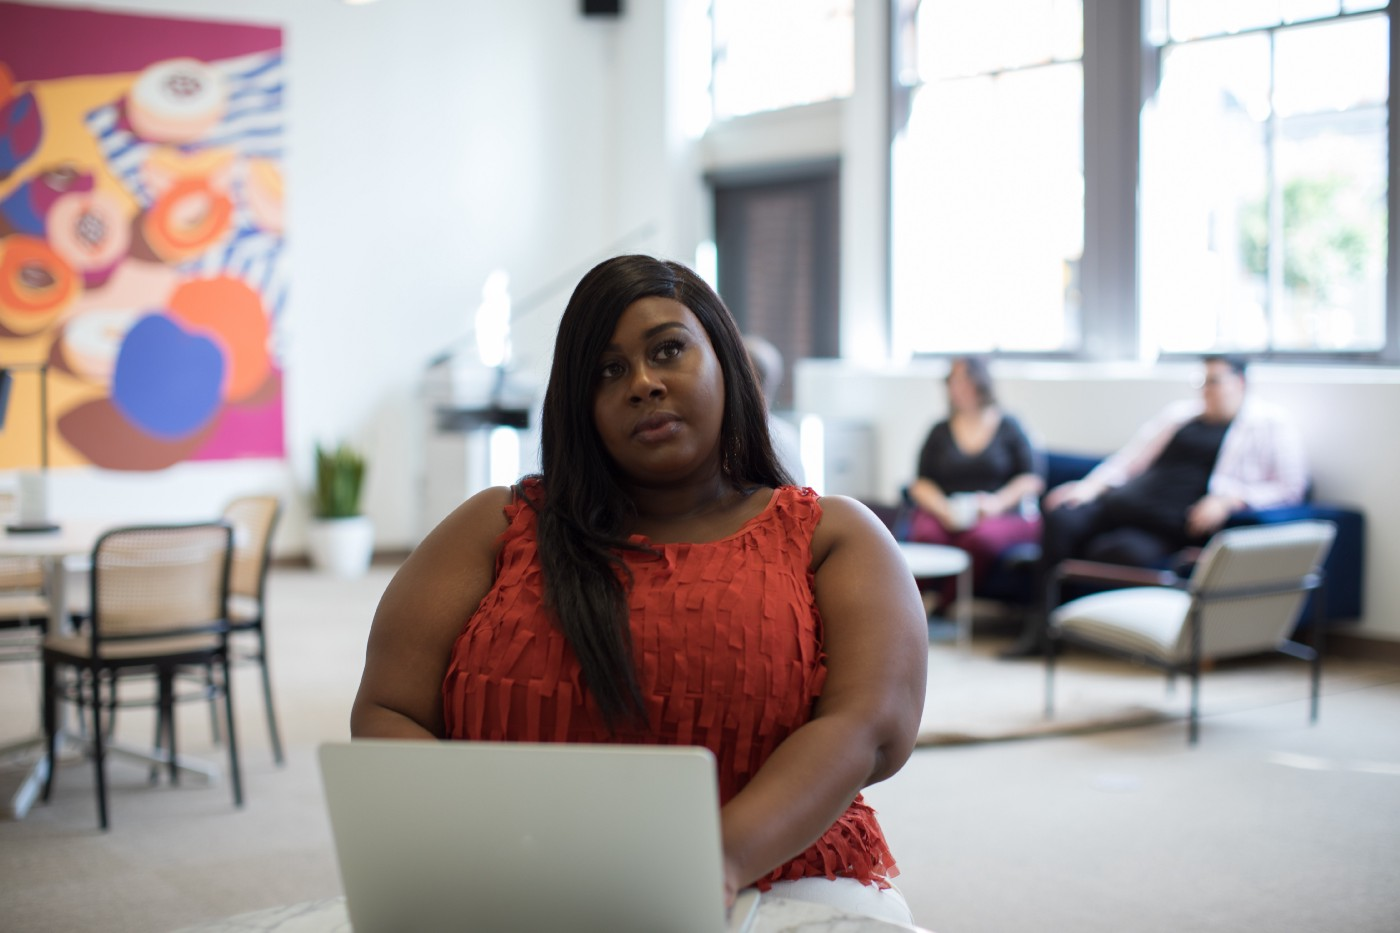 Black woman in red top sitting on her own while white co-workers are together in the background, racism, race, whiteness, white supremacy, black, inequality, injustice, white, systemic racism